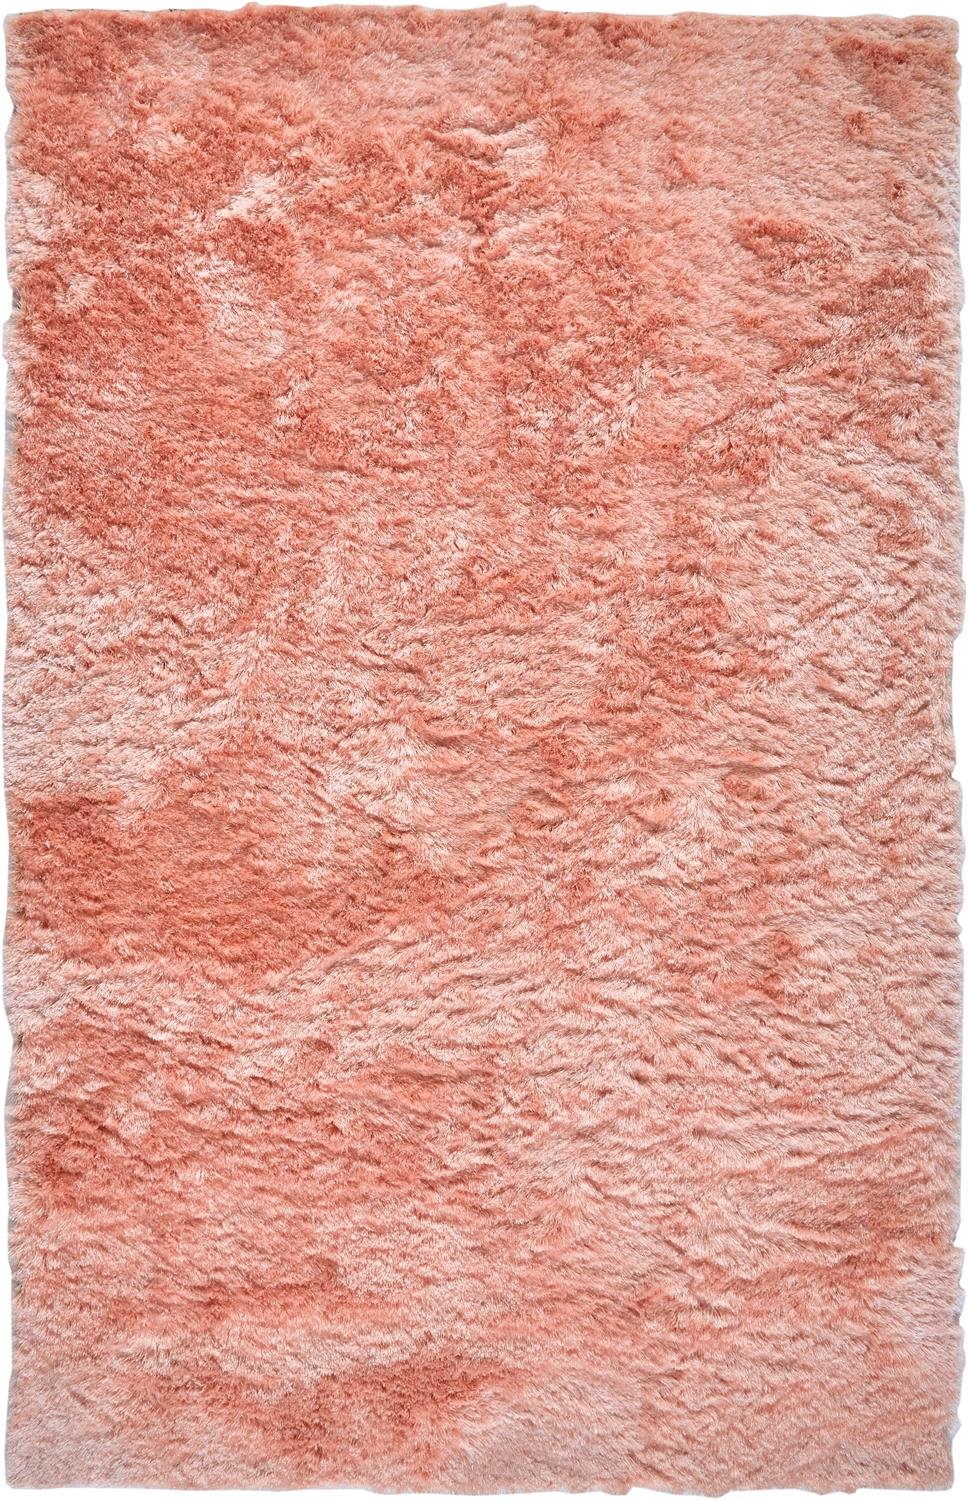 Indochine 4550F in BLUSH